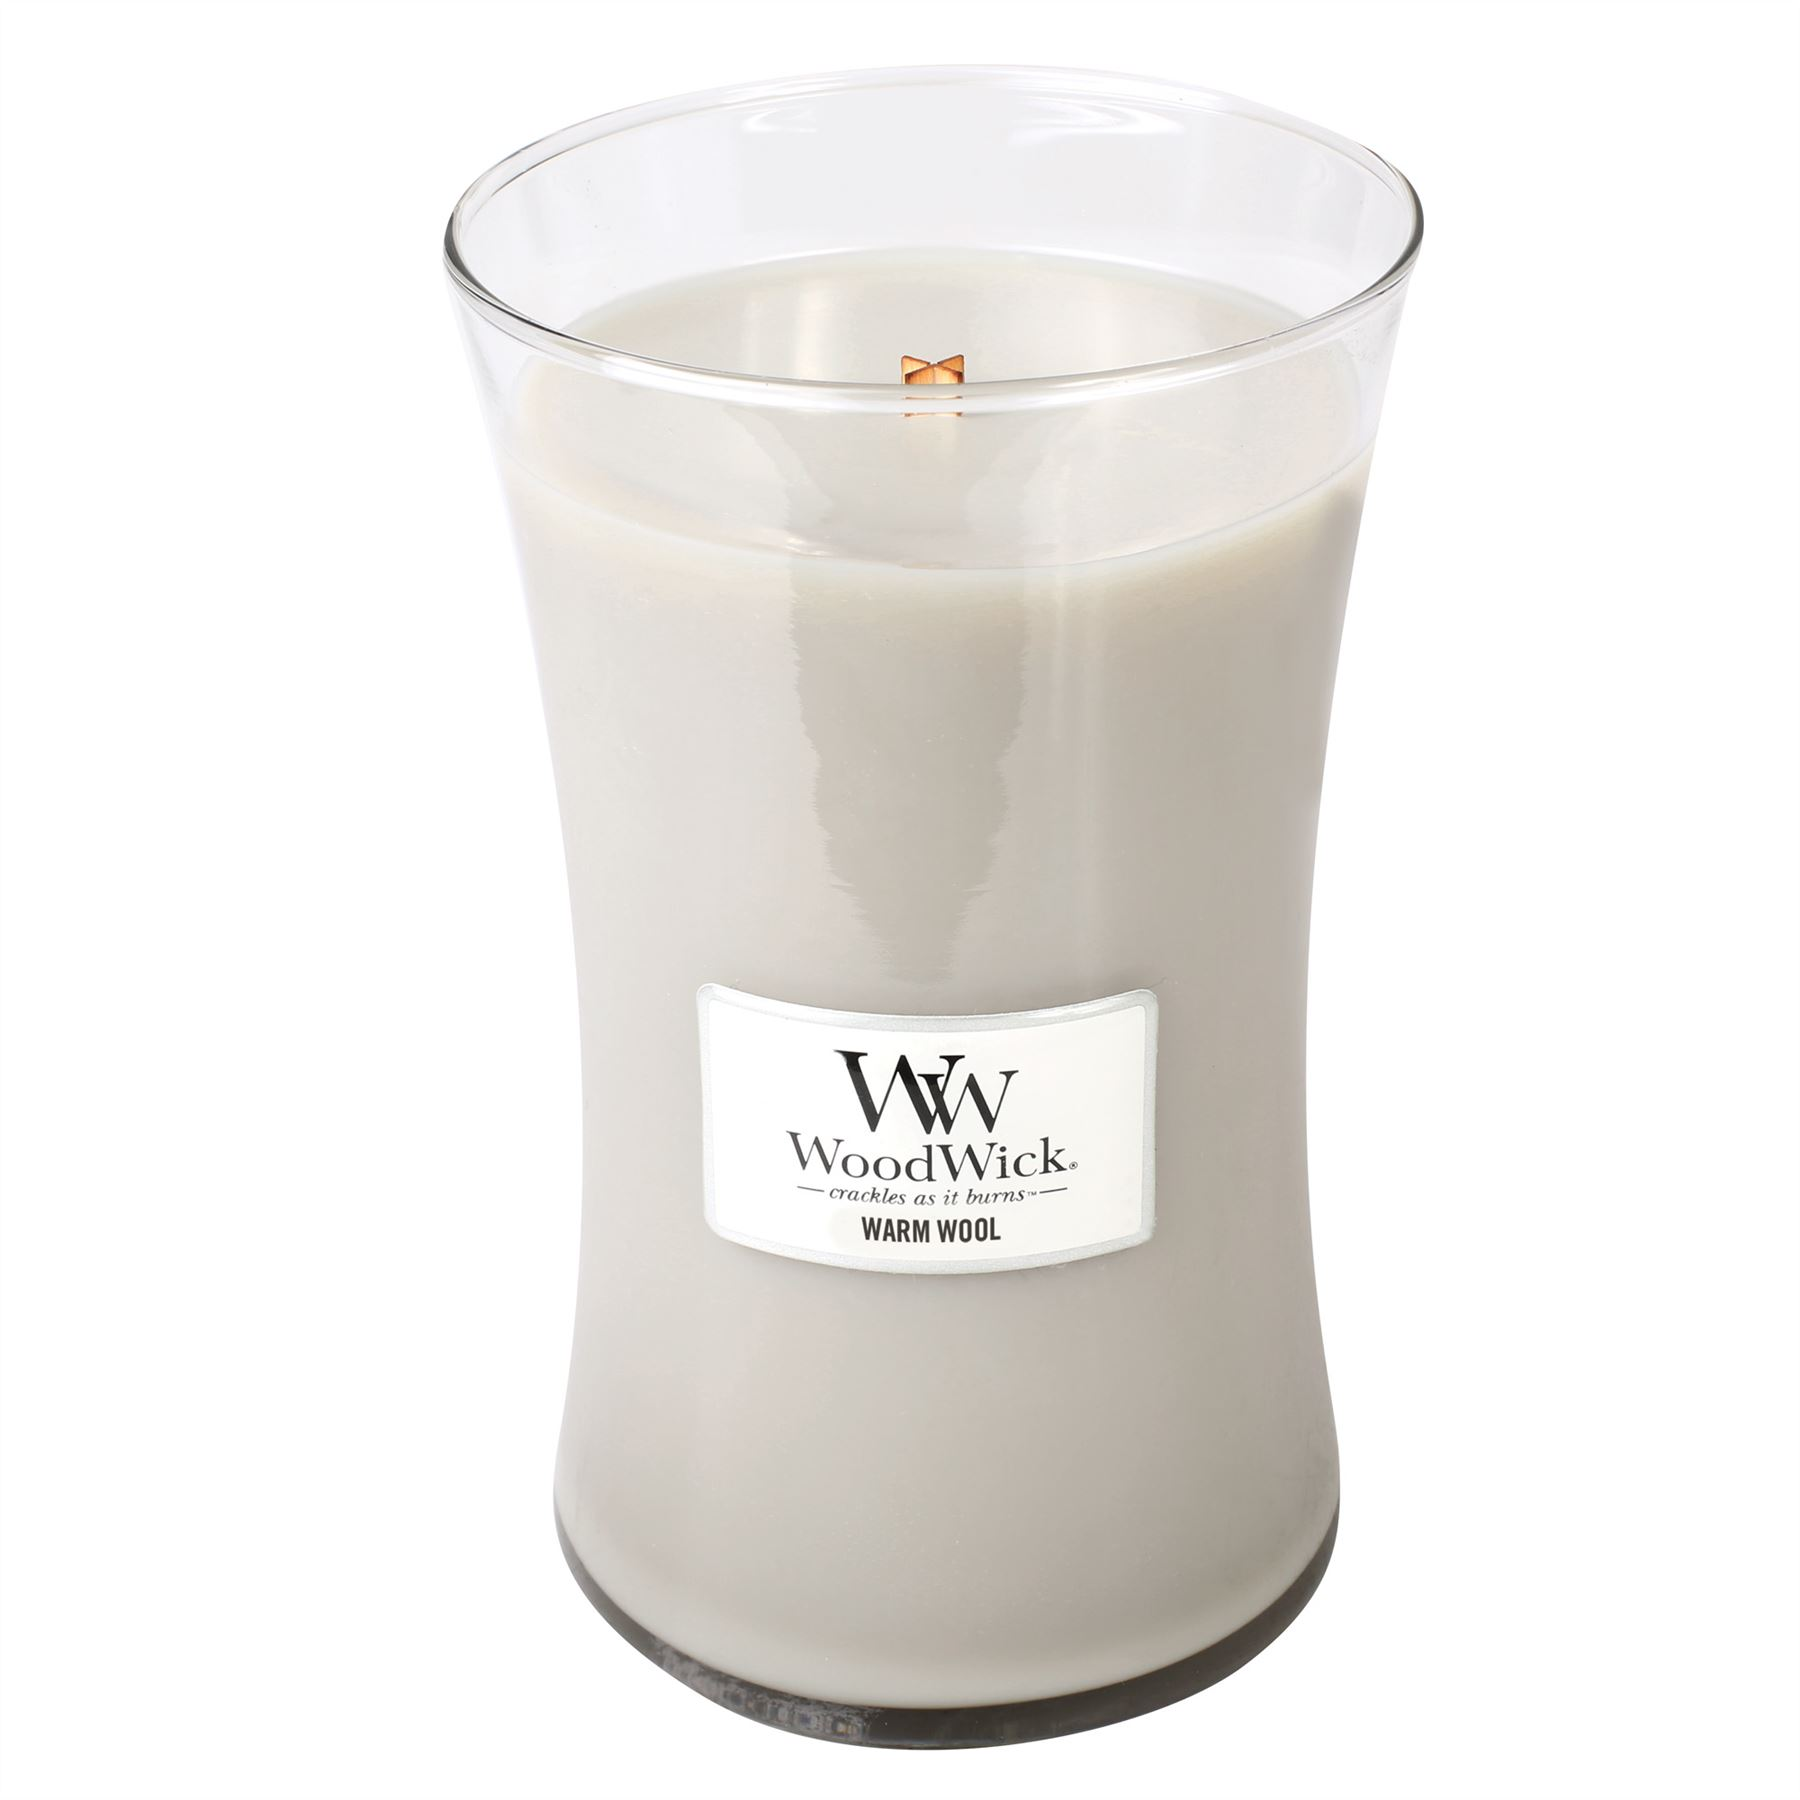 Woodwick-Christmas-Large-Candle-Jar-22oz-Scented-Crackle-Fragrance-Home-Gift